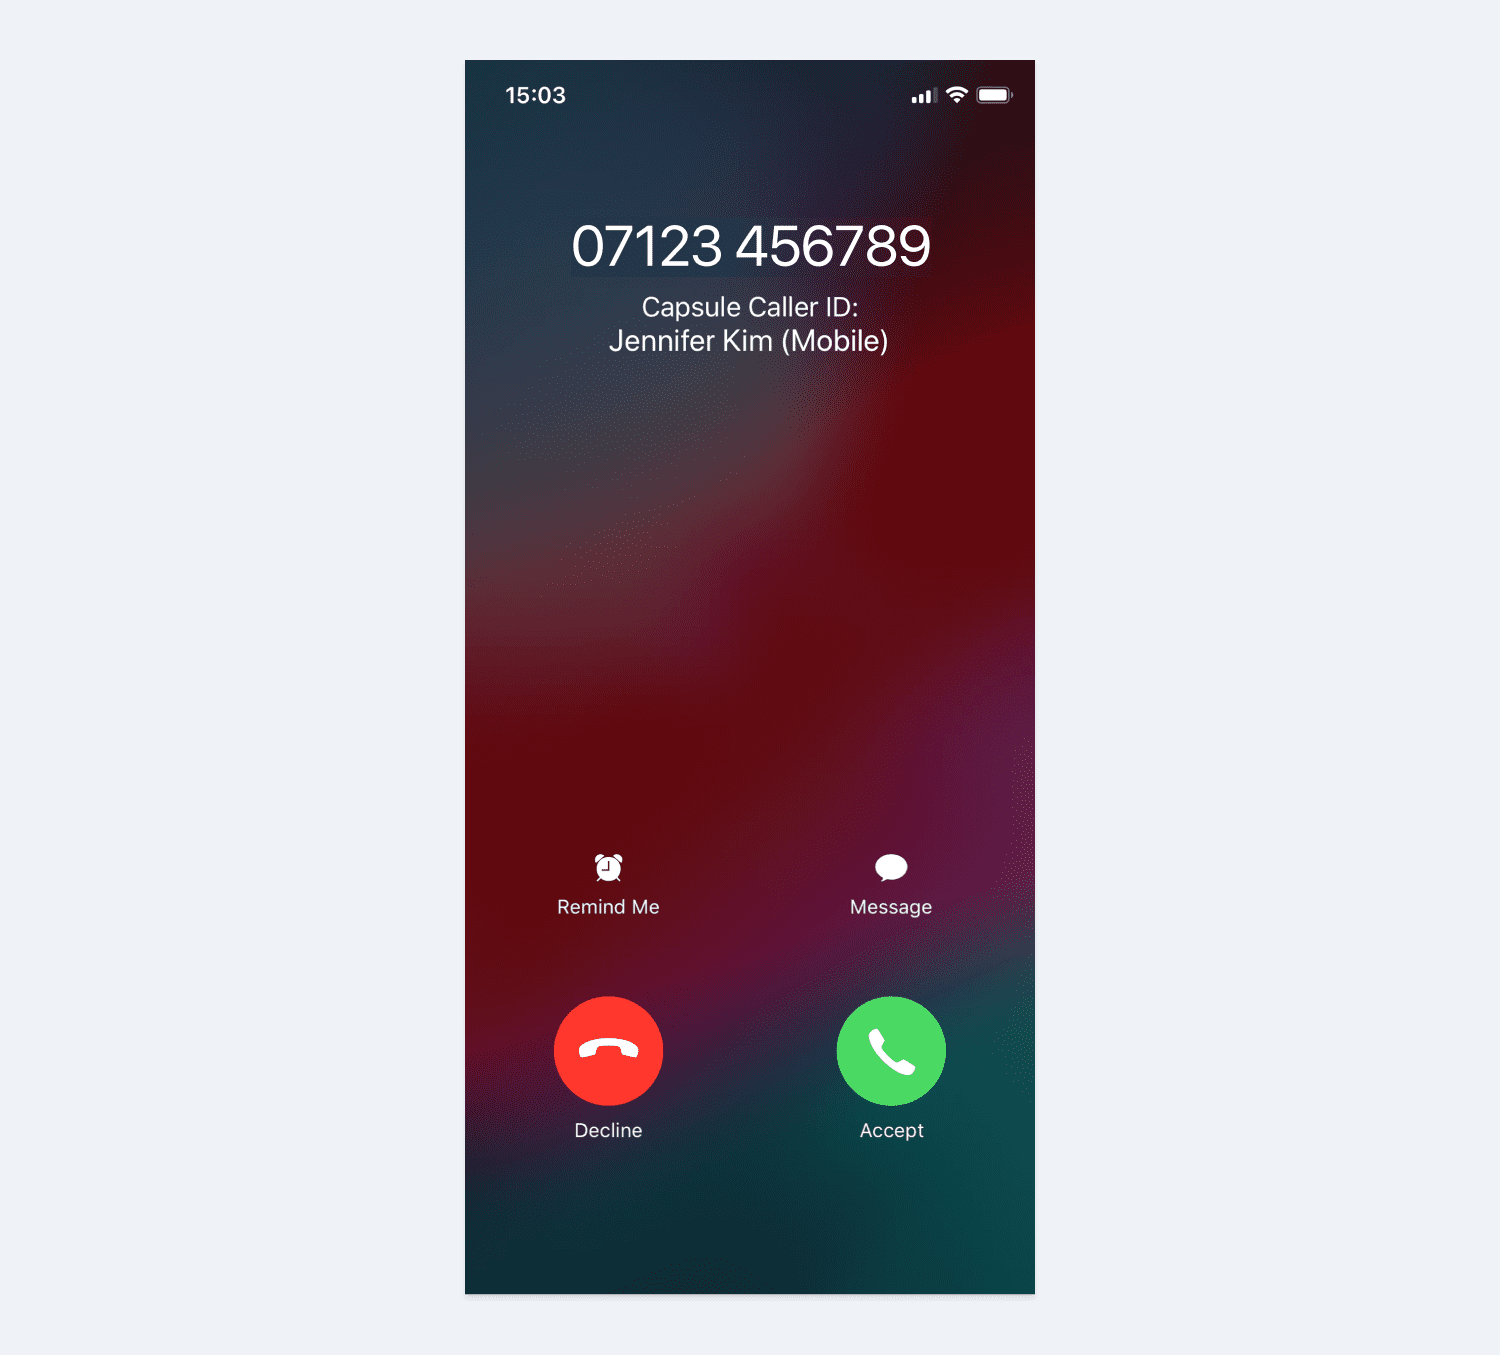 screenshot from mobile of incoming call